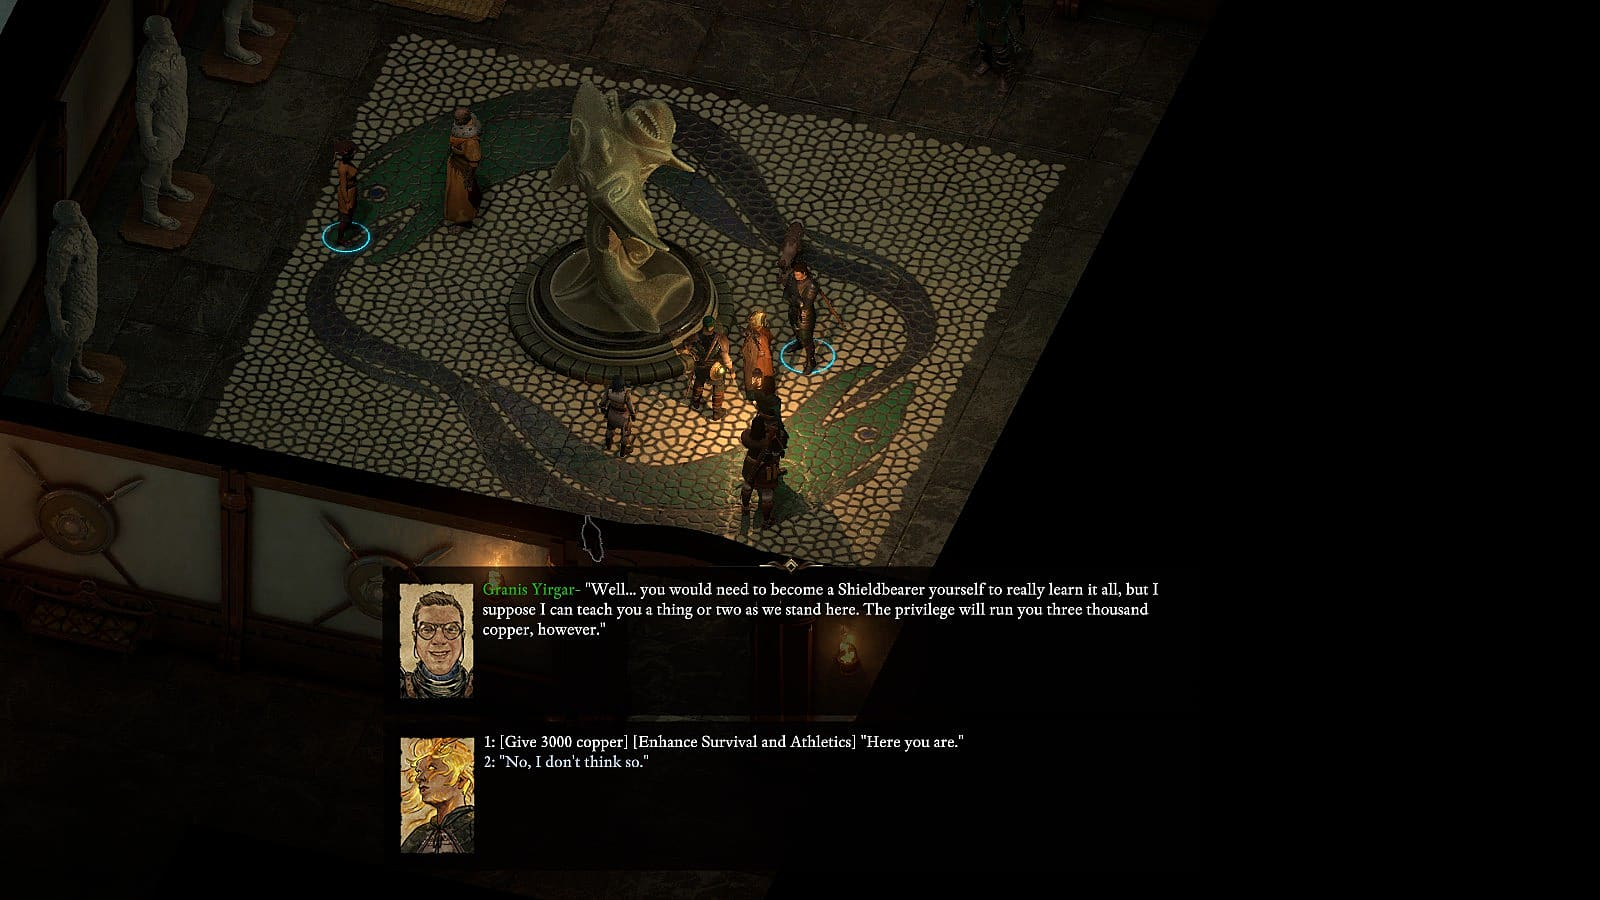 Pillars of Eternity 2 Skill Trainer Locations Guide | Pillars of